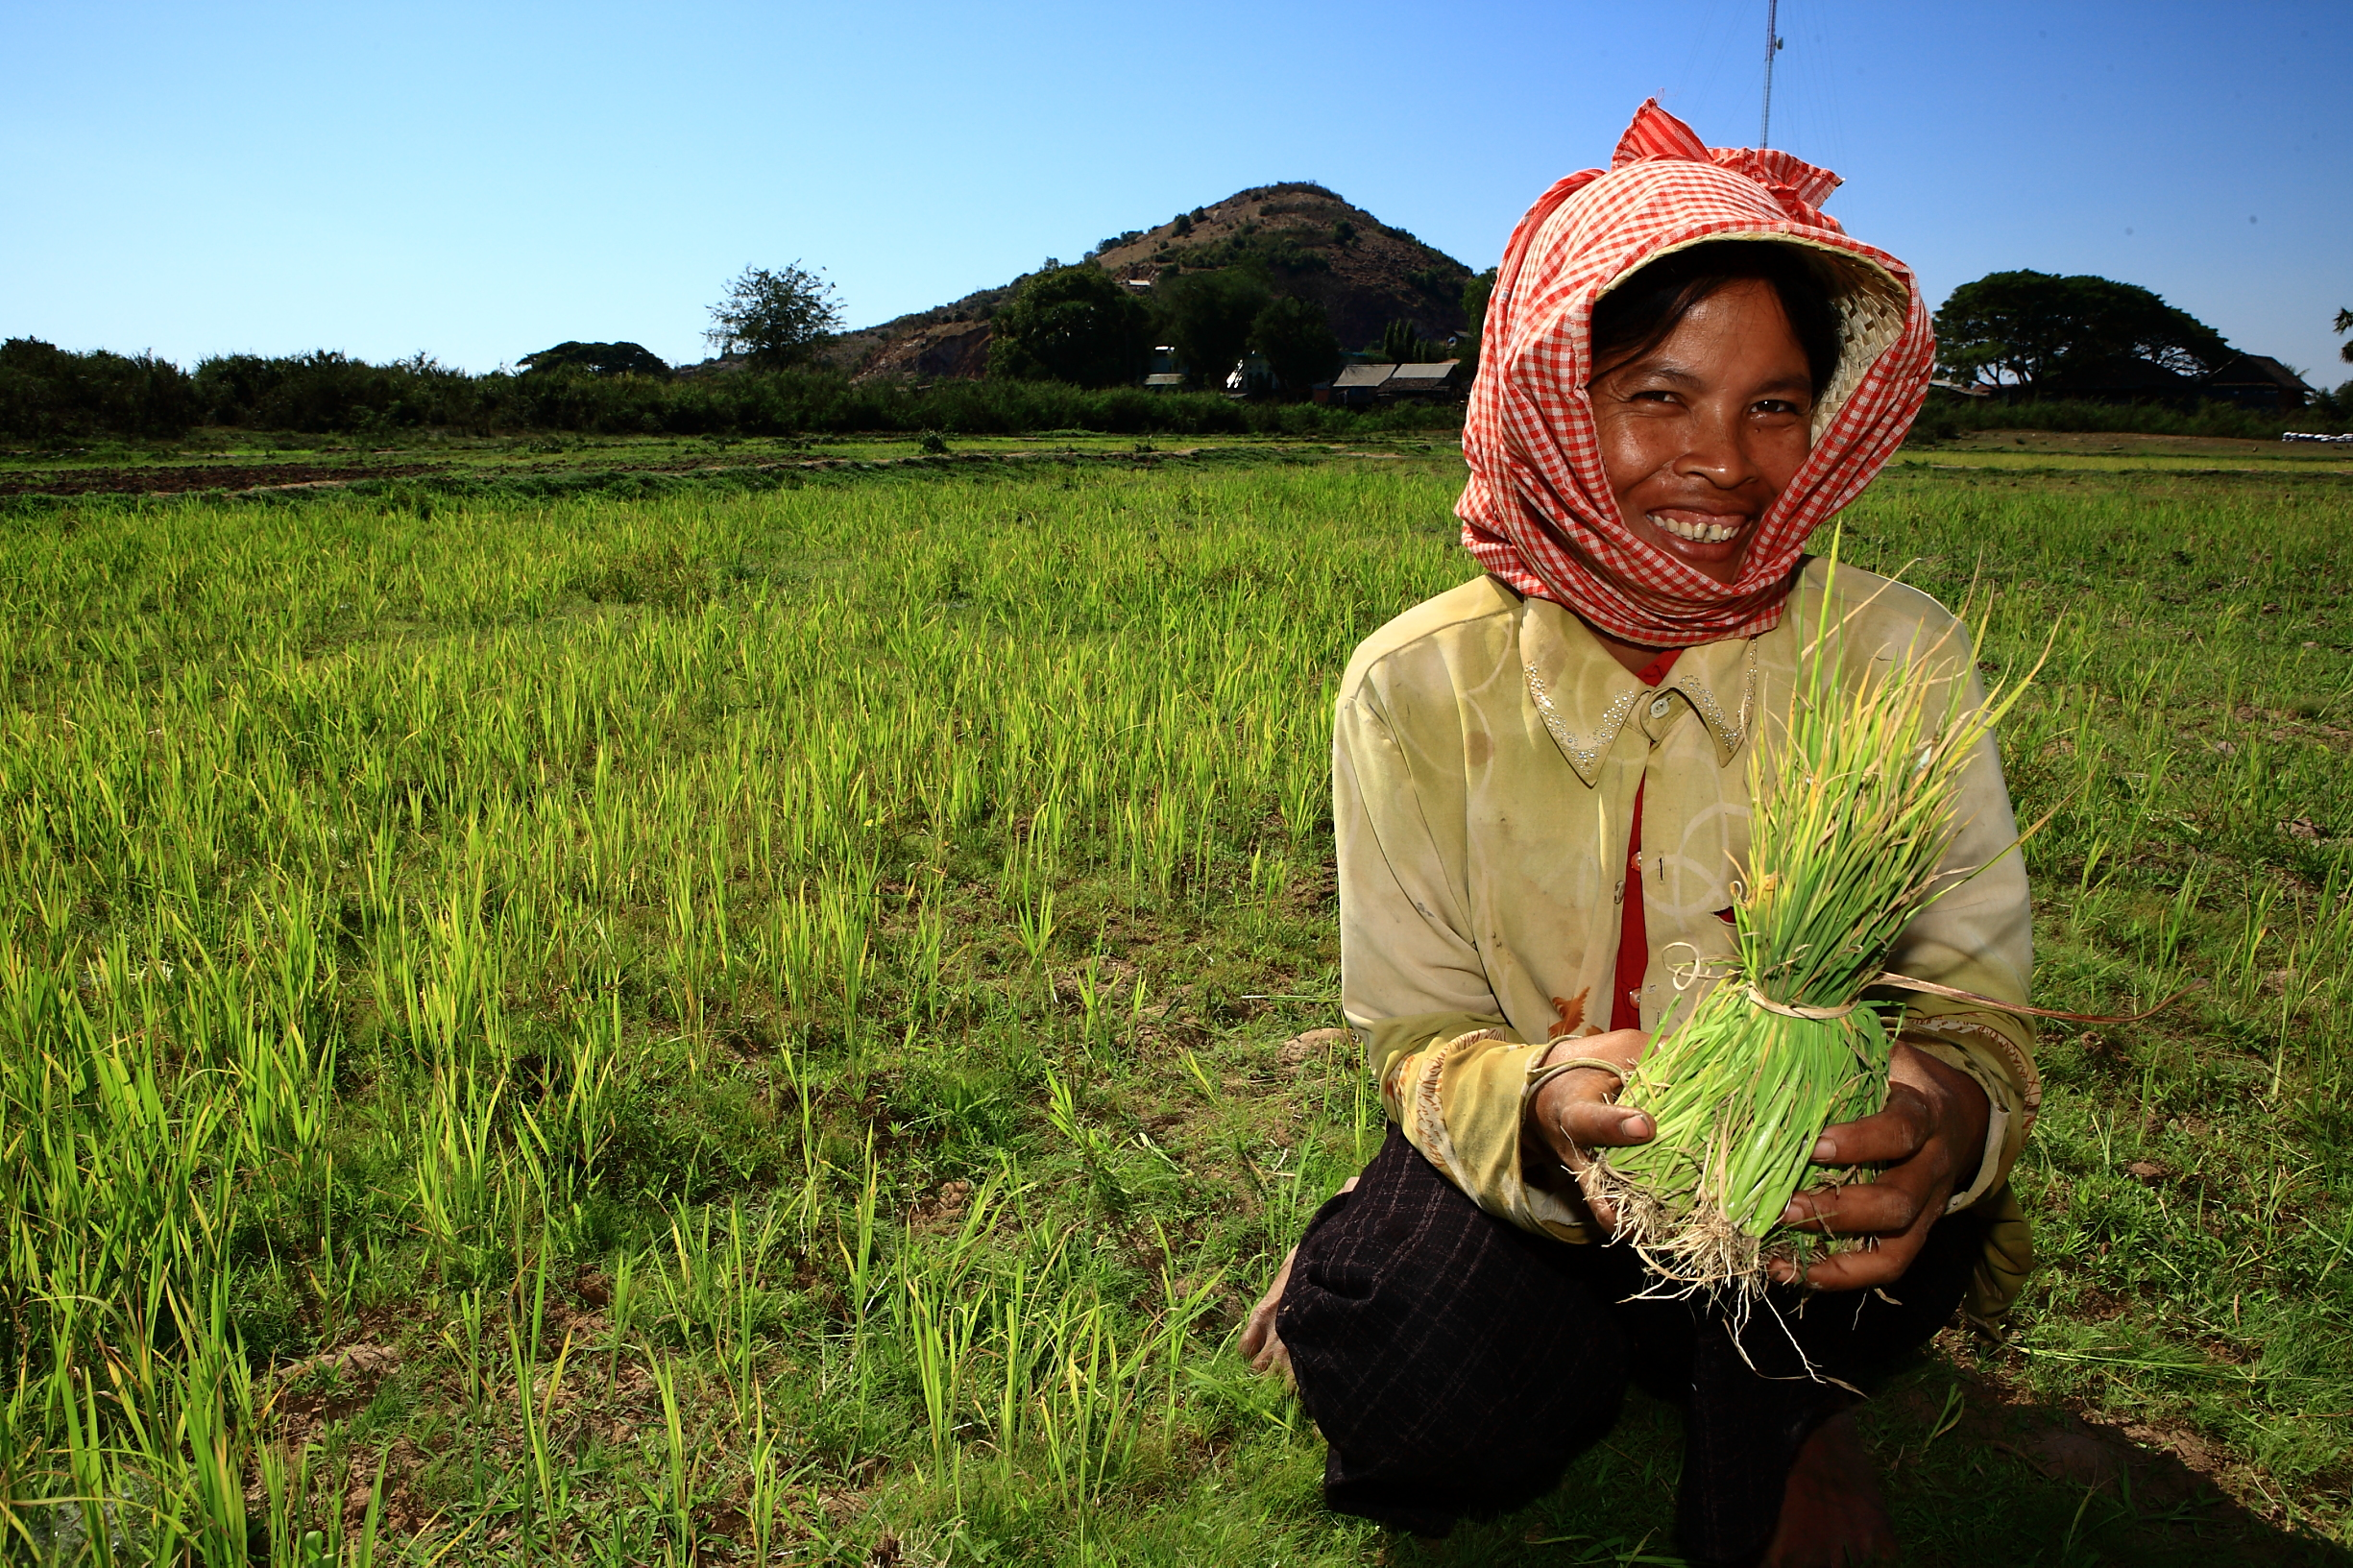 young-woman-farmer-cambodia-sei.jpg